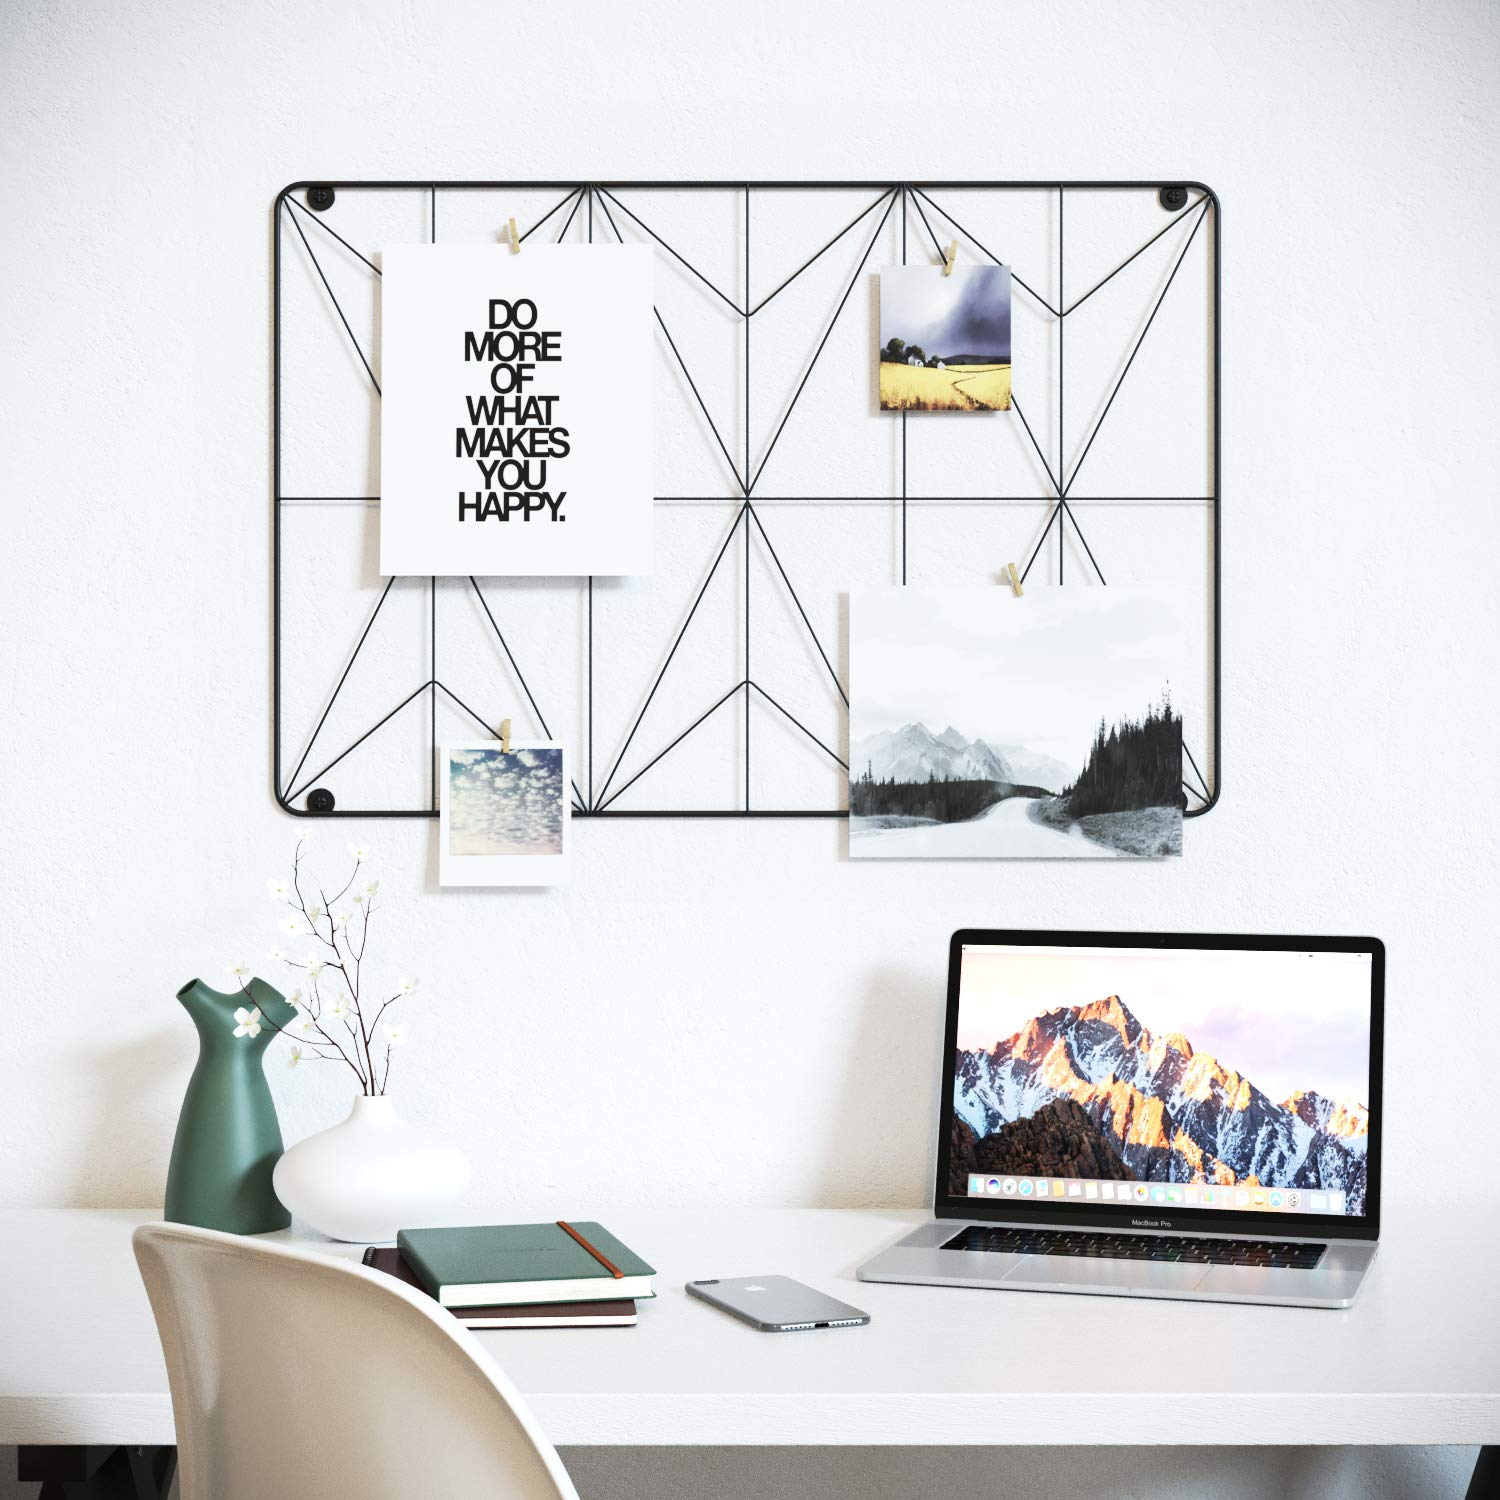 Cevillo Stylish Wire Metal Wall Grid Panel - Perfect as Photo Frame, Office Organization - Black Multi-Functional Wall Storage Display (Black | Rectangle)